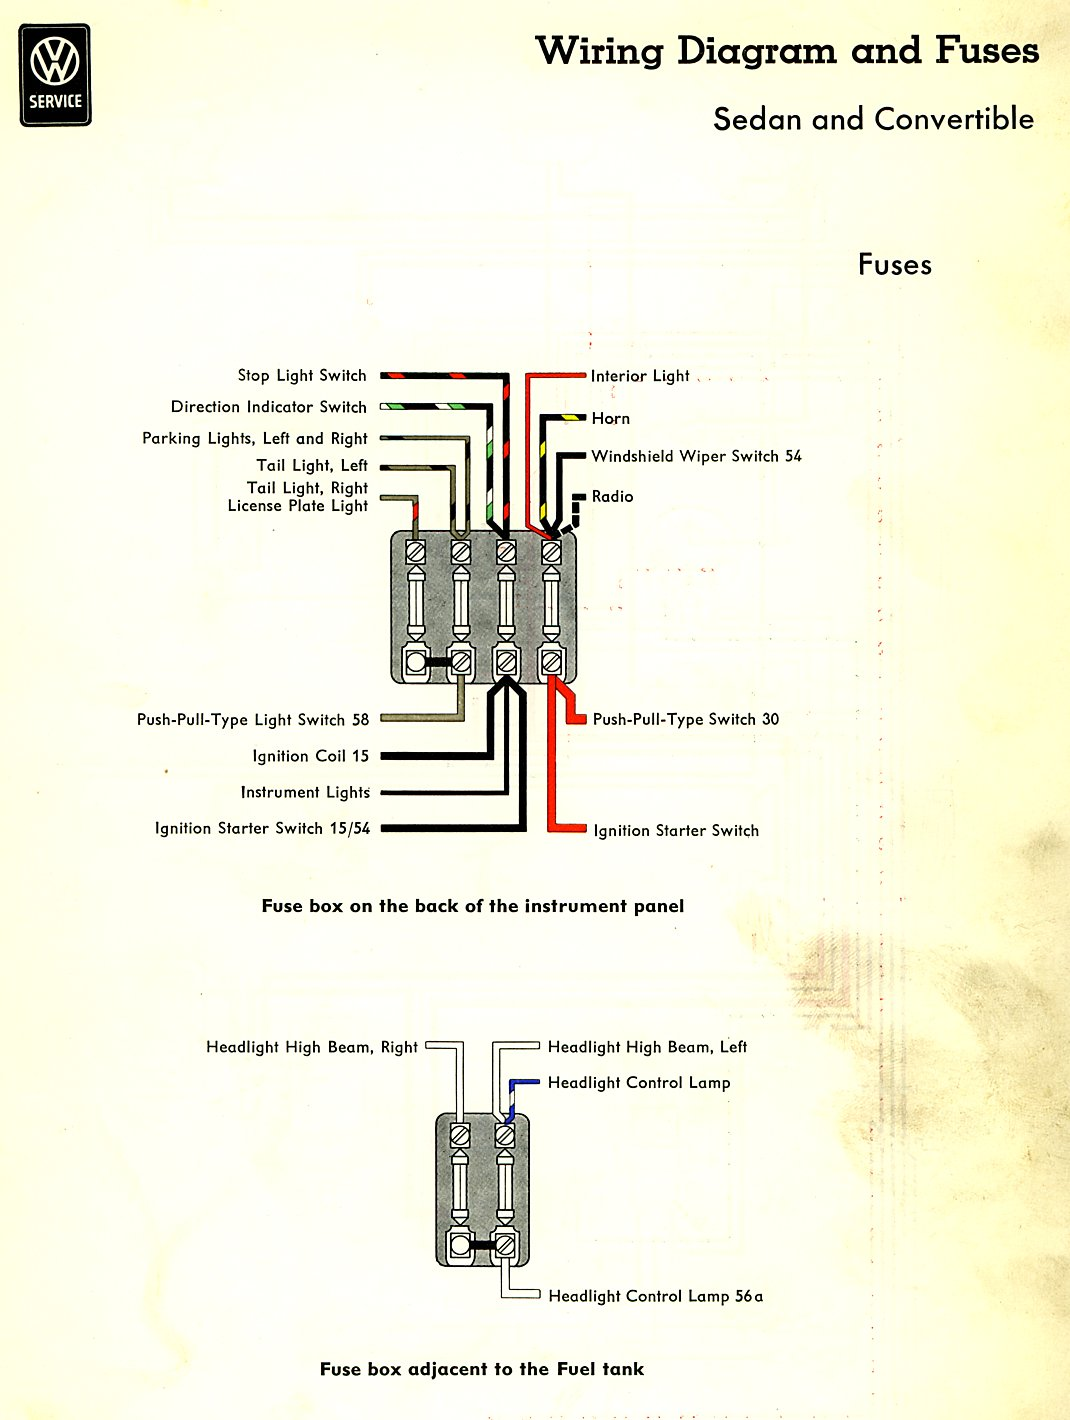 bug_58_fuses thesamba com type 1 wiring diagrams 1973 Super Beetle Wiring Diagram at reclaimingppi.co